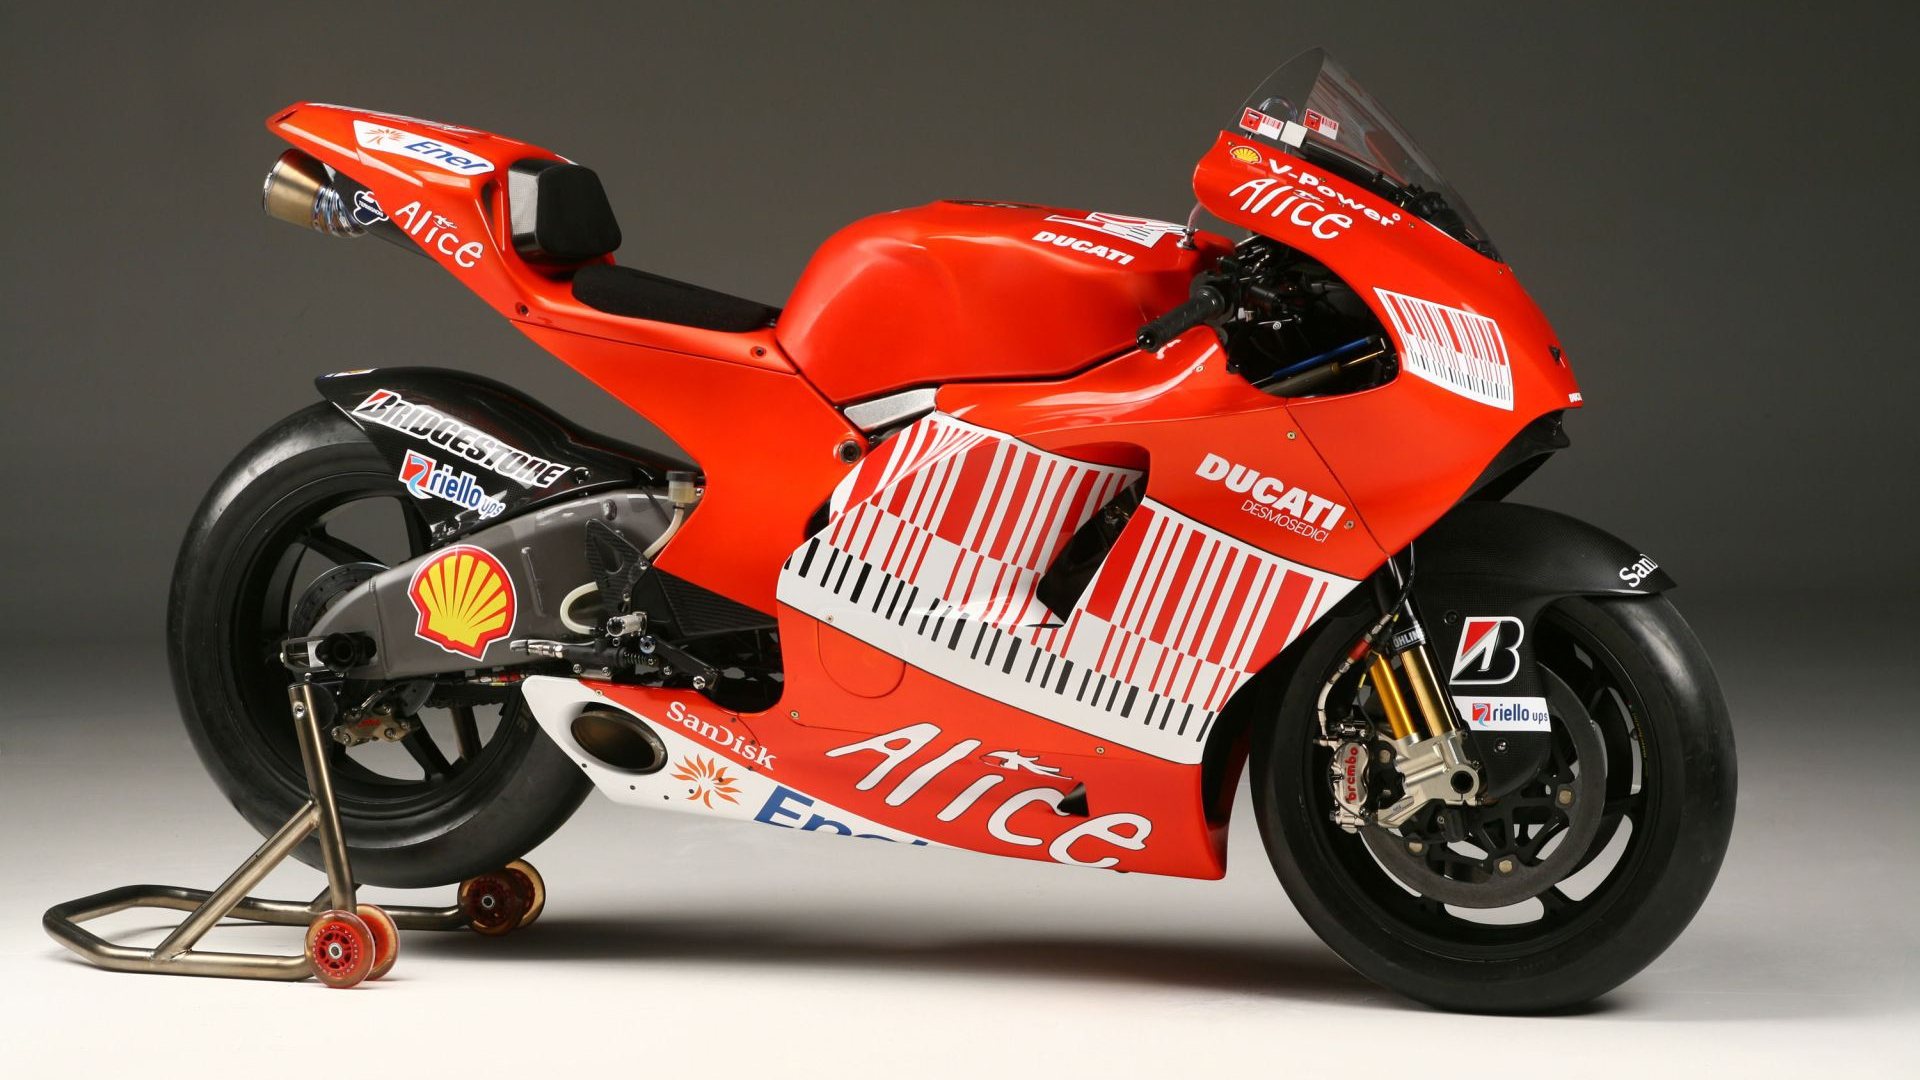 Ducati Motogp 2009 HD wallpaper